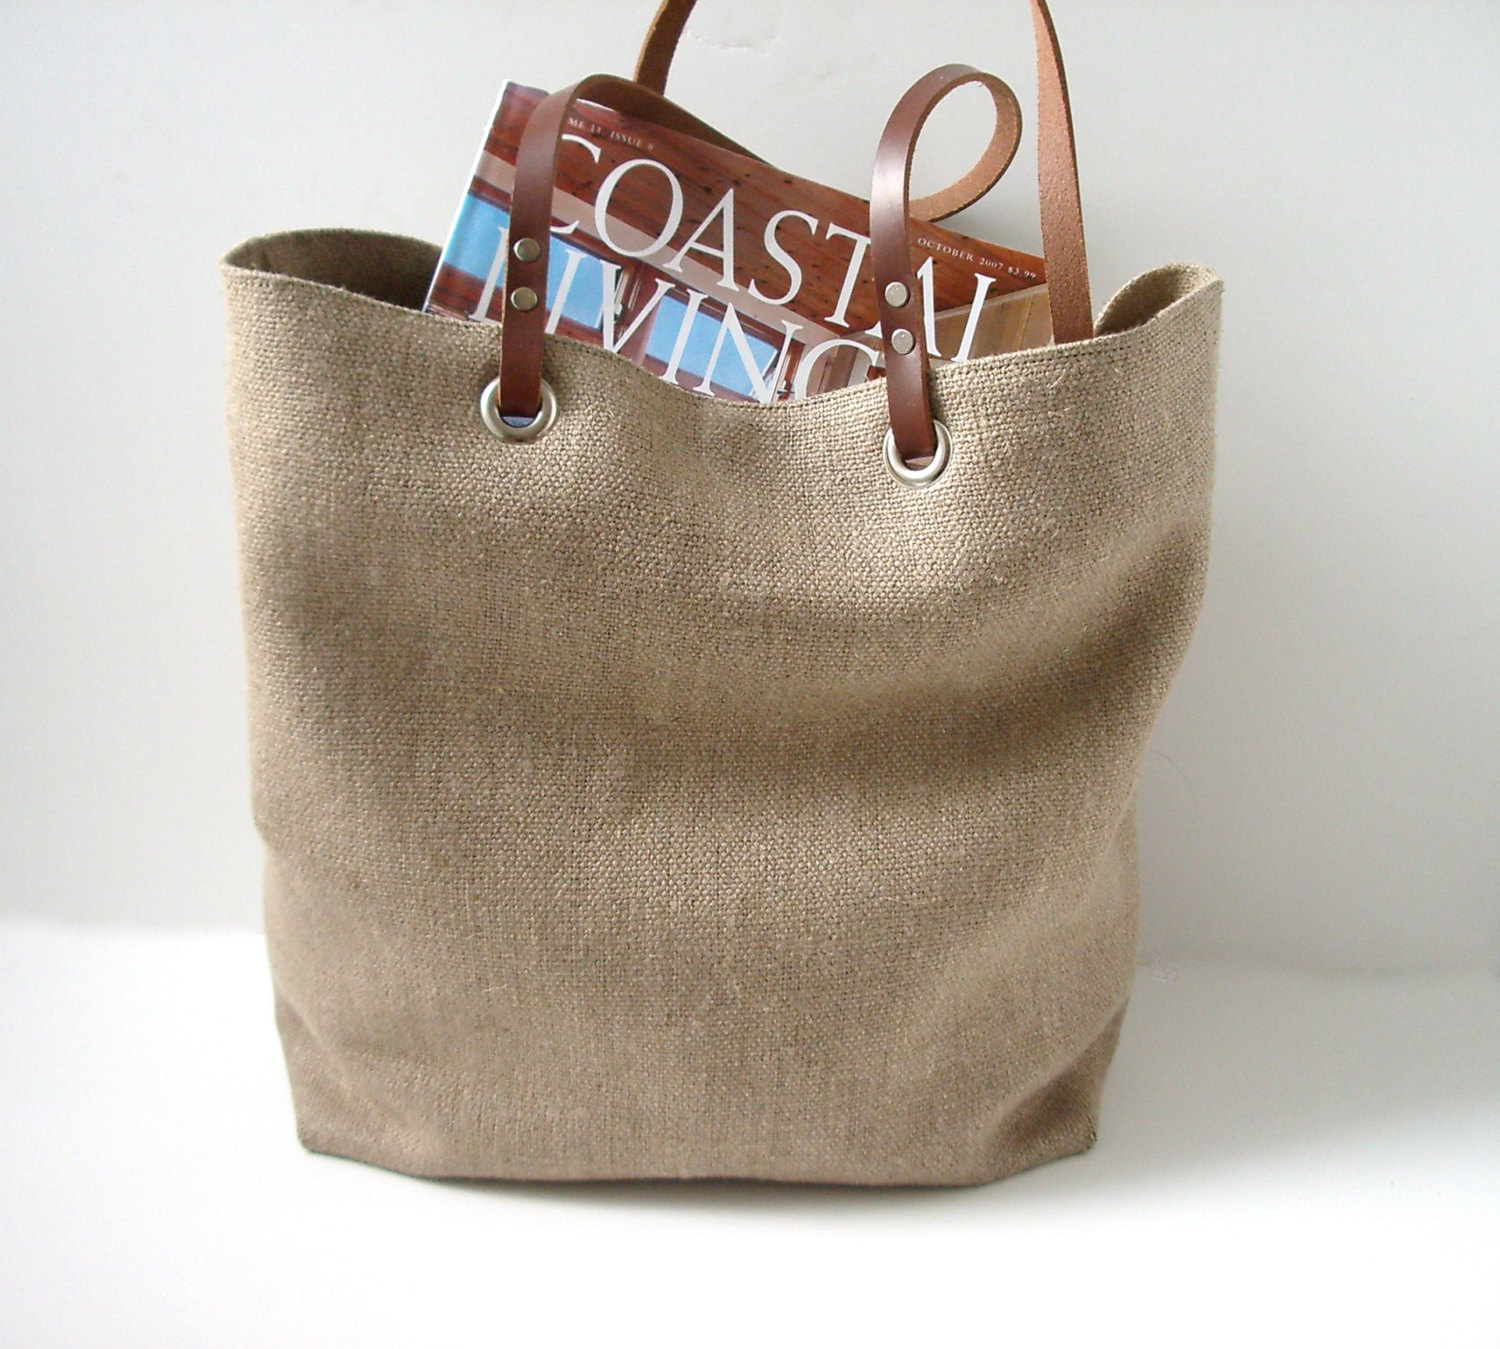 Woven Jute Beach Bag, Summer Bag · Independent Reign · Online ...